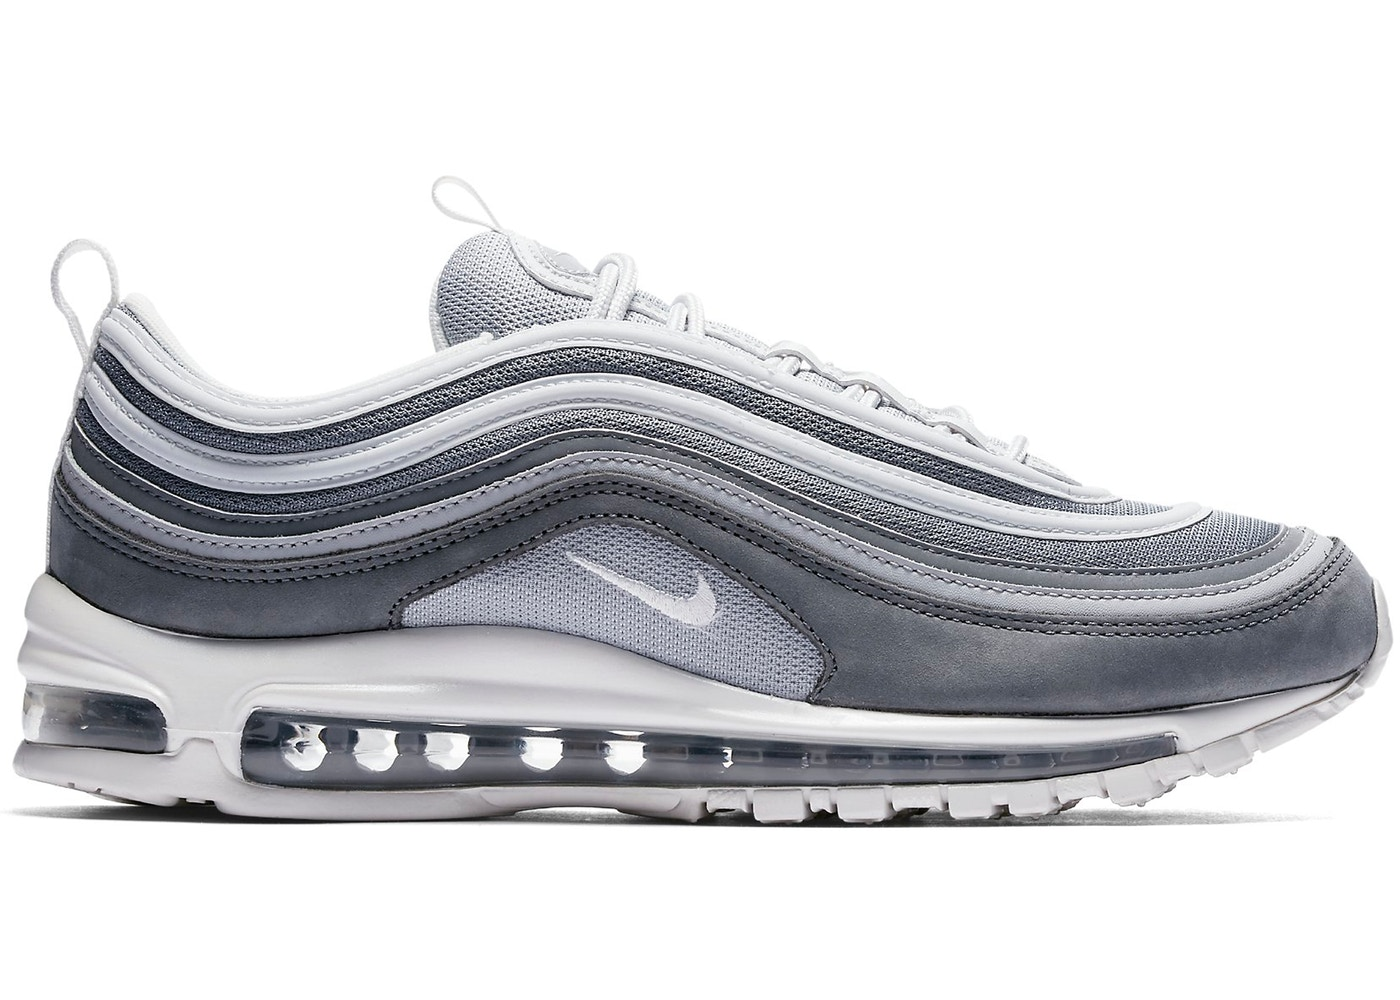 timeless design 48d5b a9c0d Air Max 97 Wolf Grey - 312834-005